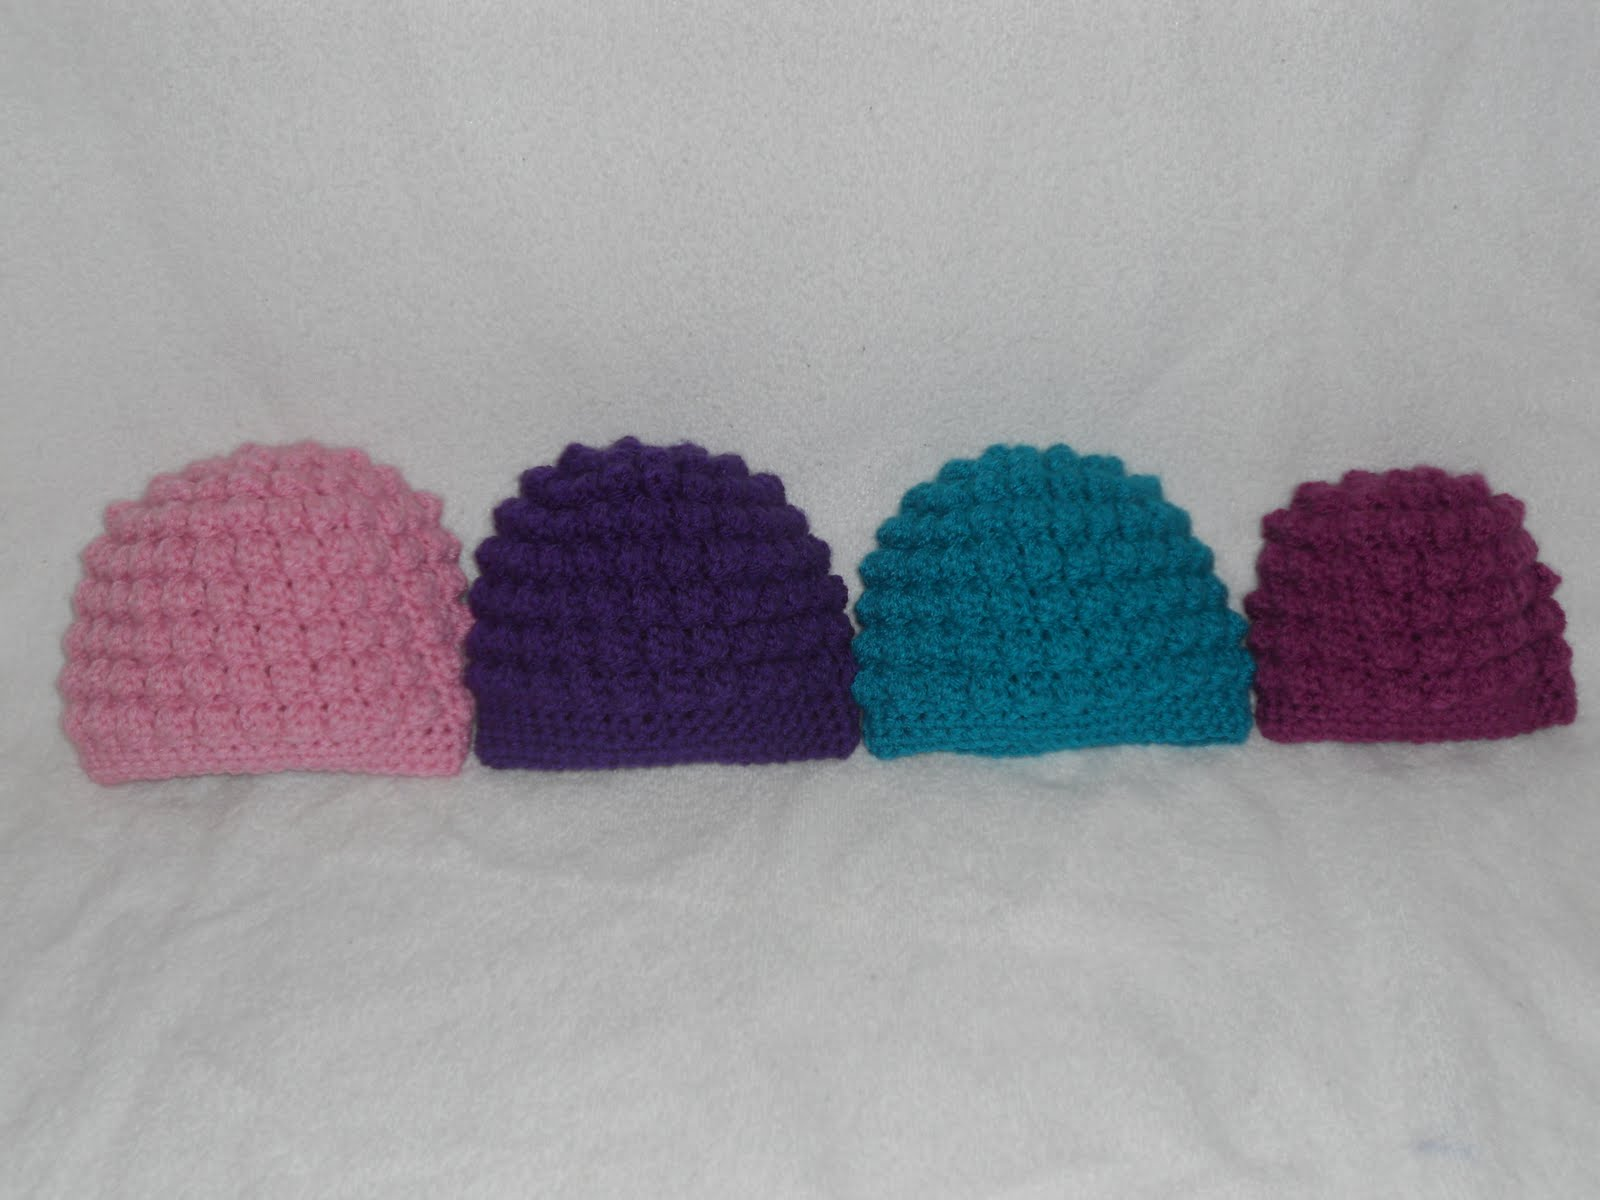 6 beginner crochet beanie patterns — whip up